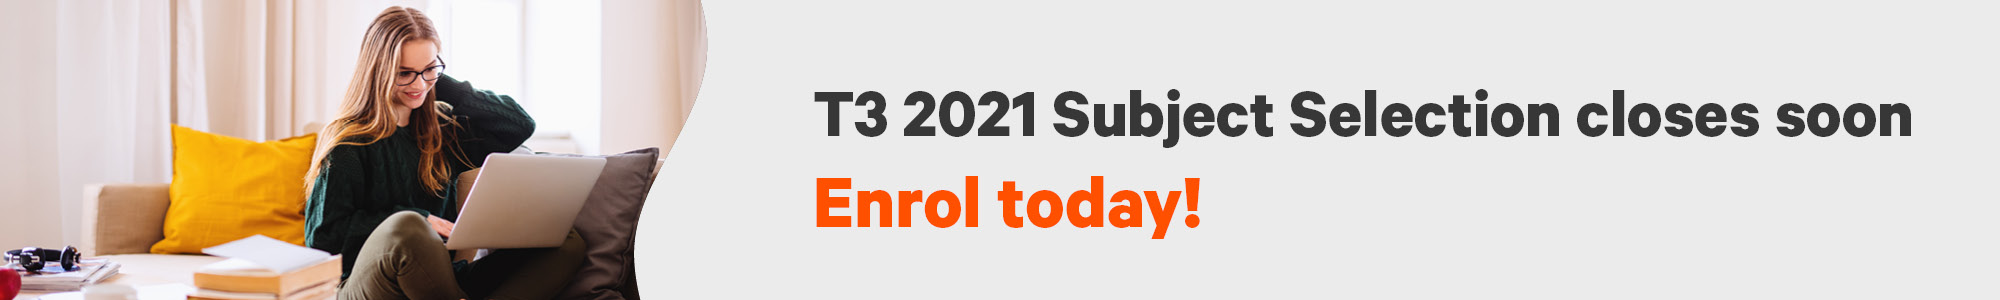 T3 subject selection closes soon